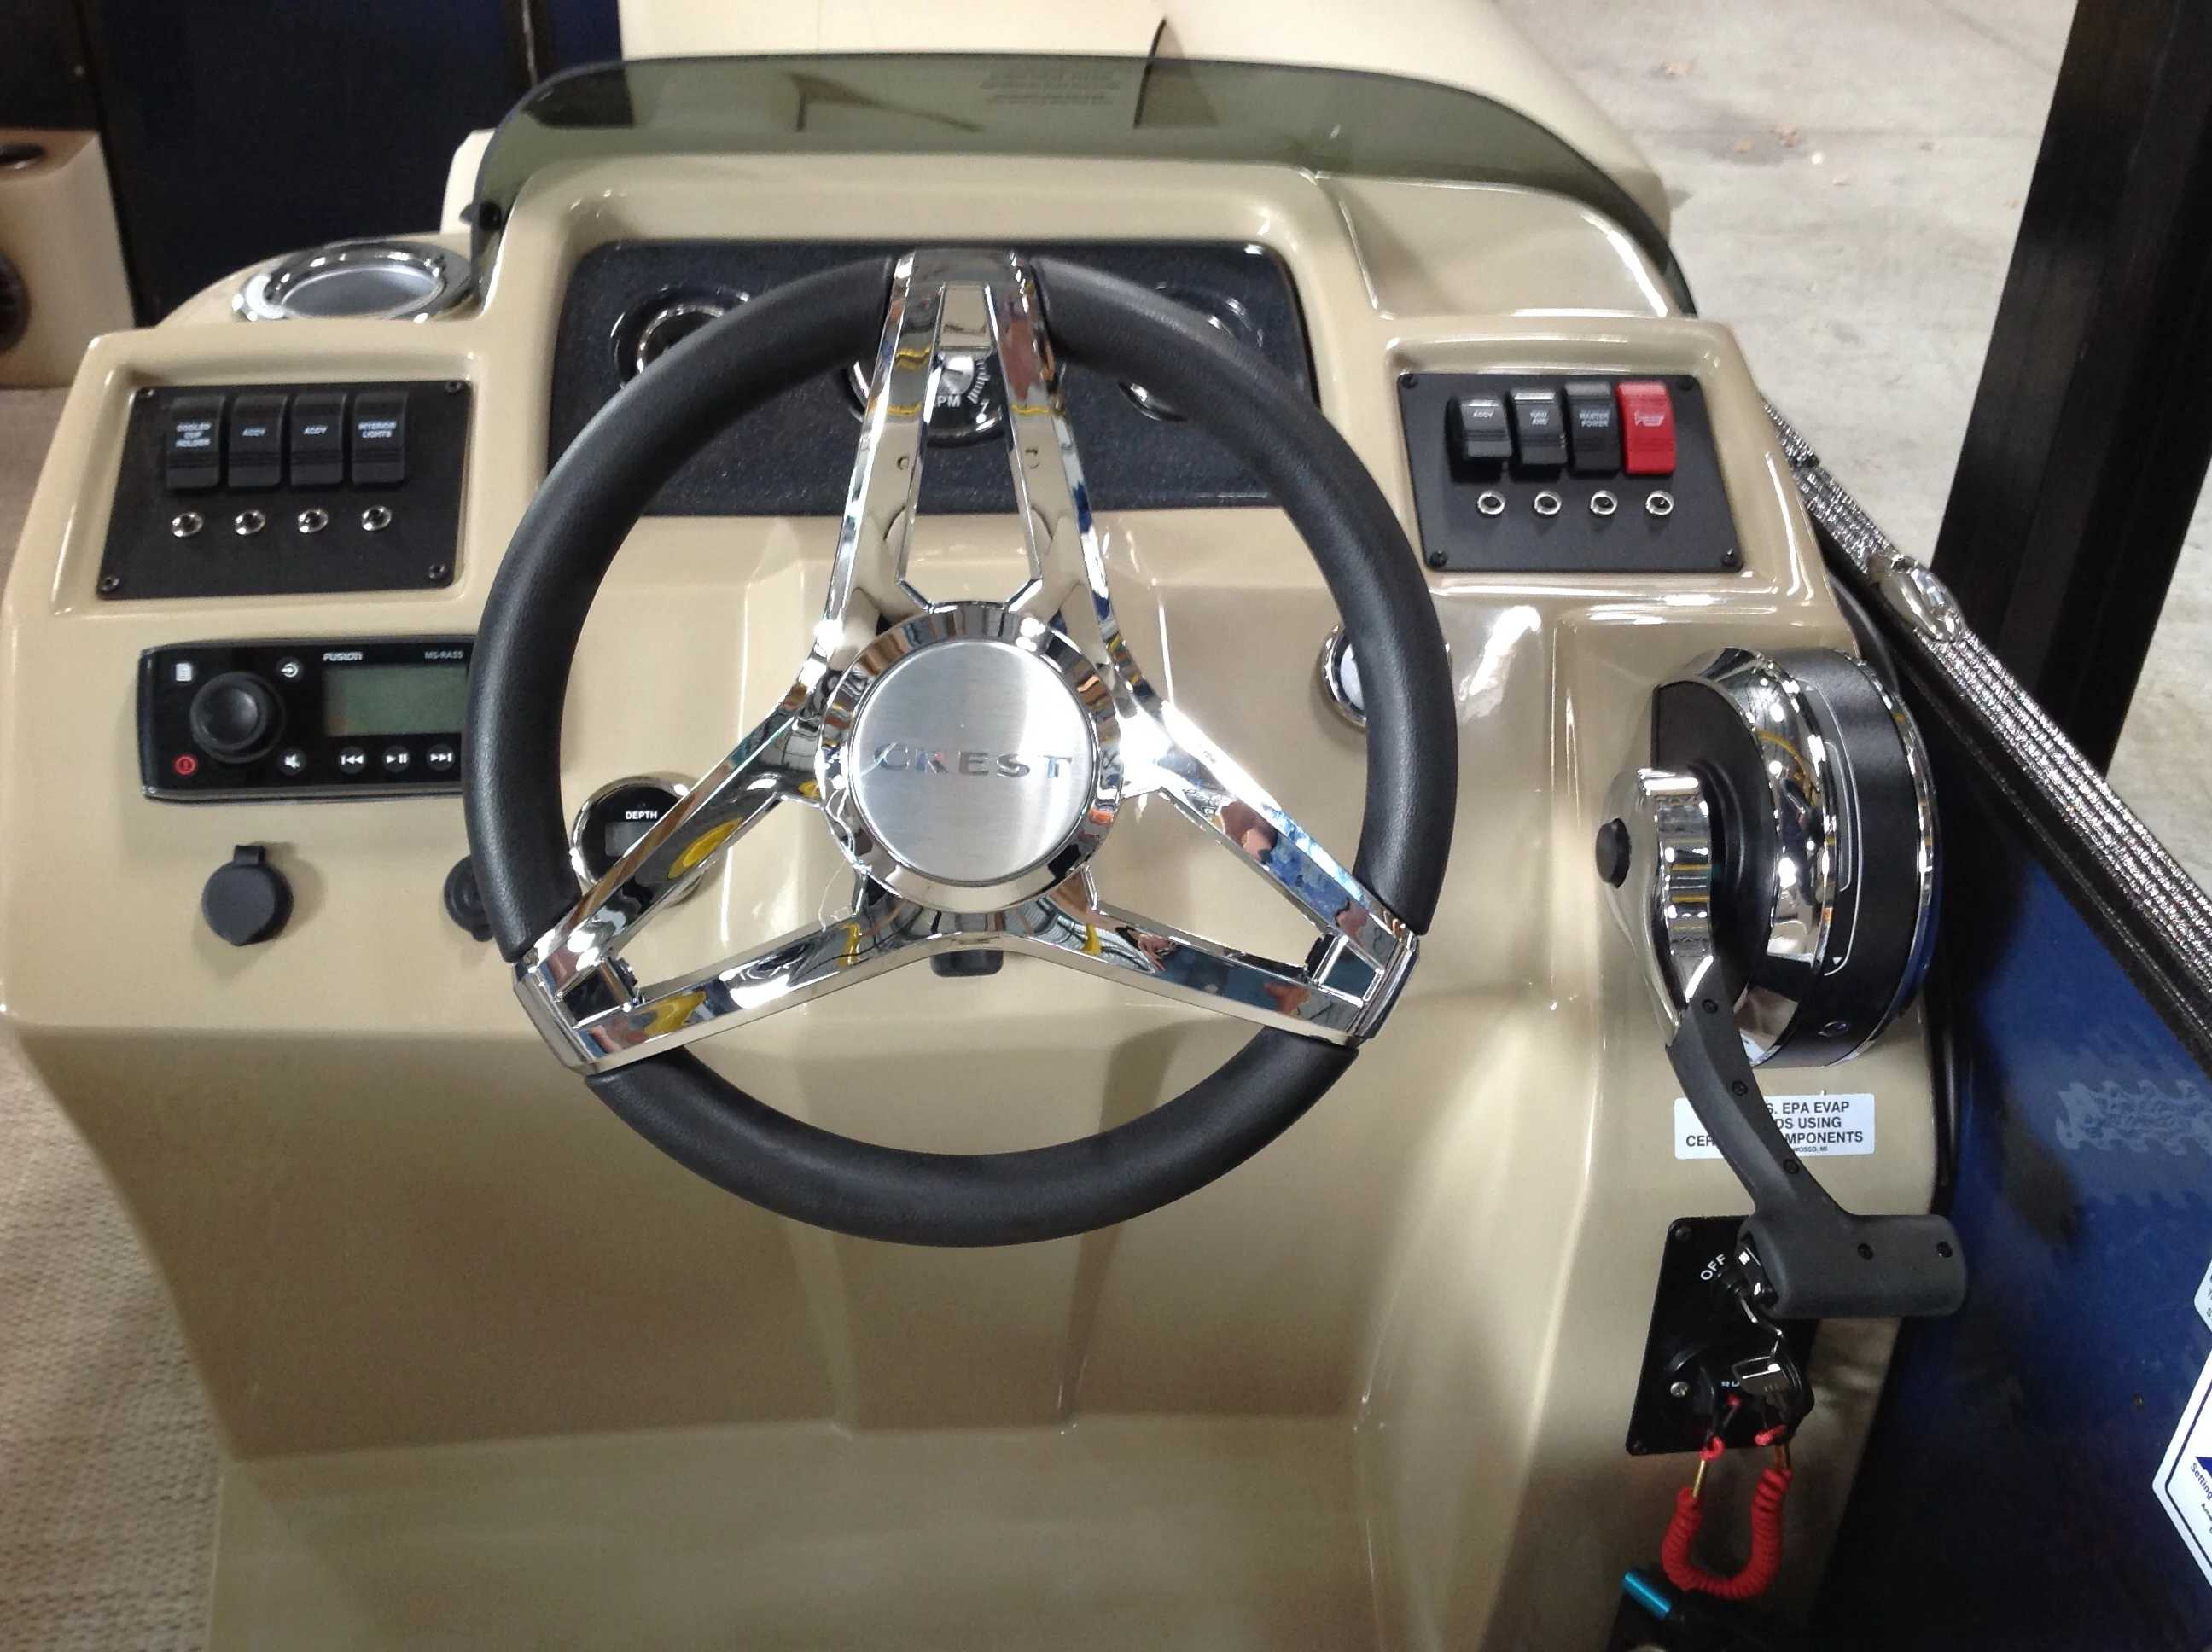 2021 Crest boat for sale, model of the boat is Cl Lx 200slc & Image # 8 of 13